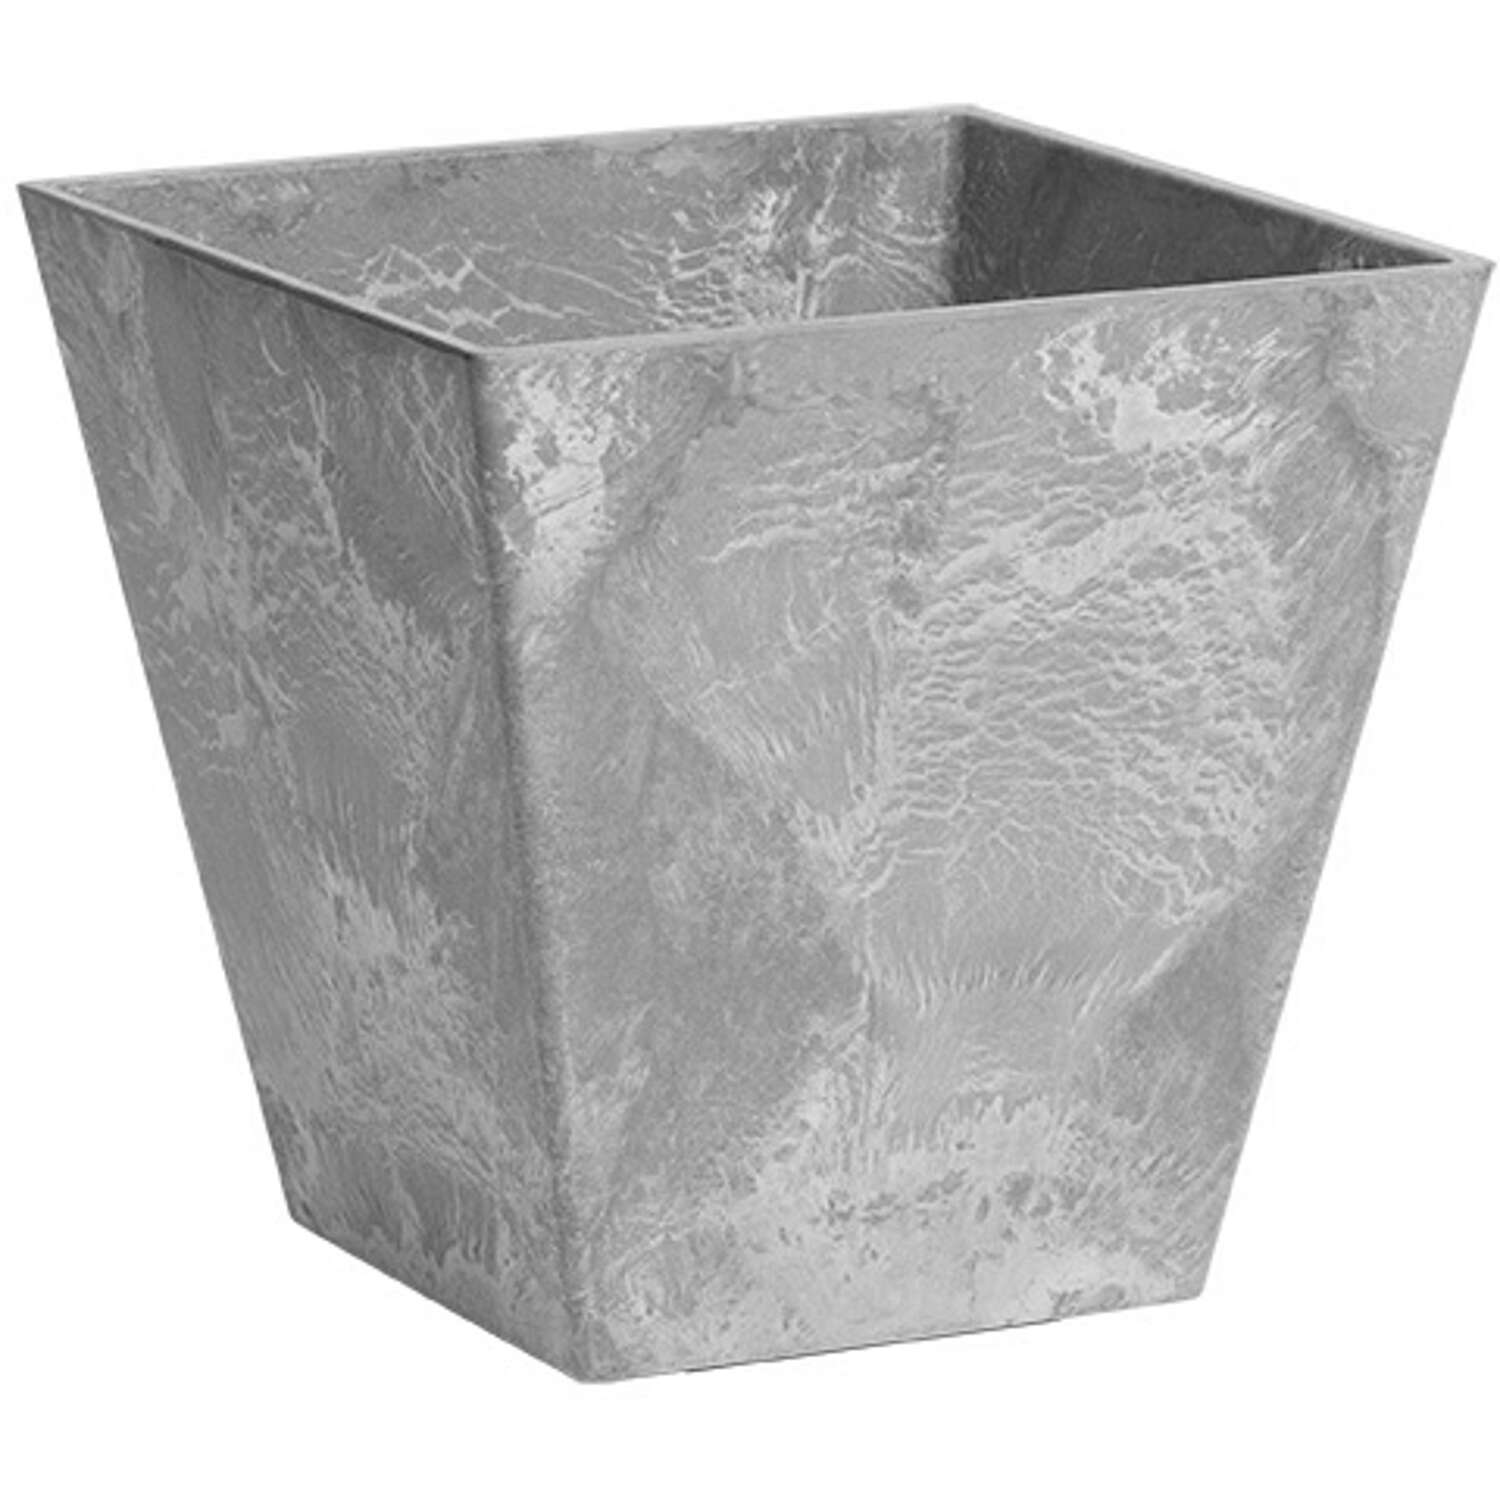 Novelty  Artstone  10 in. H x 7.81 in. W x 7.81 in. D Resin/Stone Powder  Ella  Planter  Gray